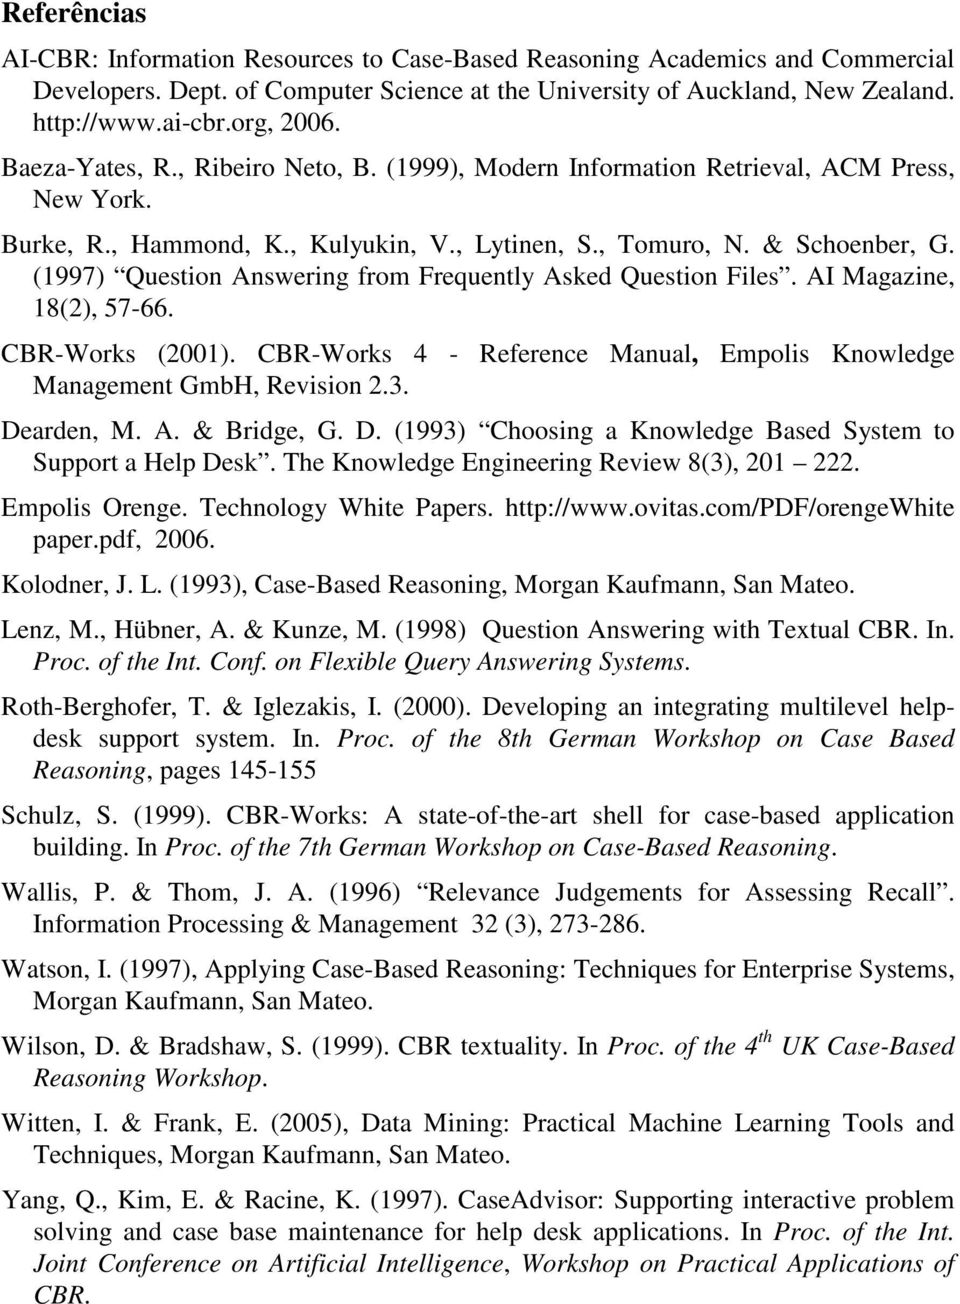 (1997) Queston Answerng from Frequently Asked Queston Fles. AI Magazne, 18(2), 57-66. CBR-Works (2001). CBR-Works 4 - Reference Manual, Empols Knowledge Management GmbH, Revson 2.3. Dearden, M. A. & Brdge, G.